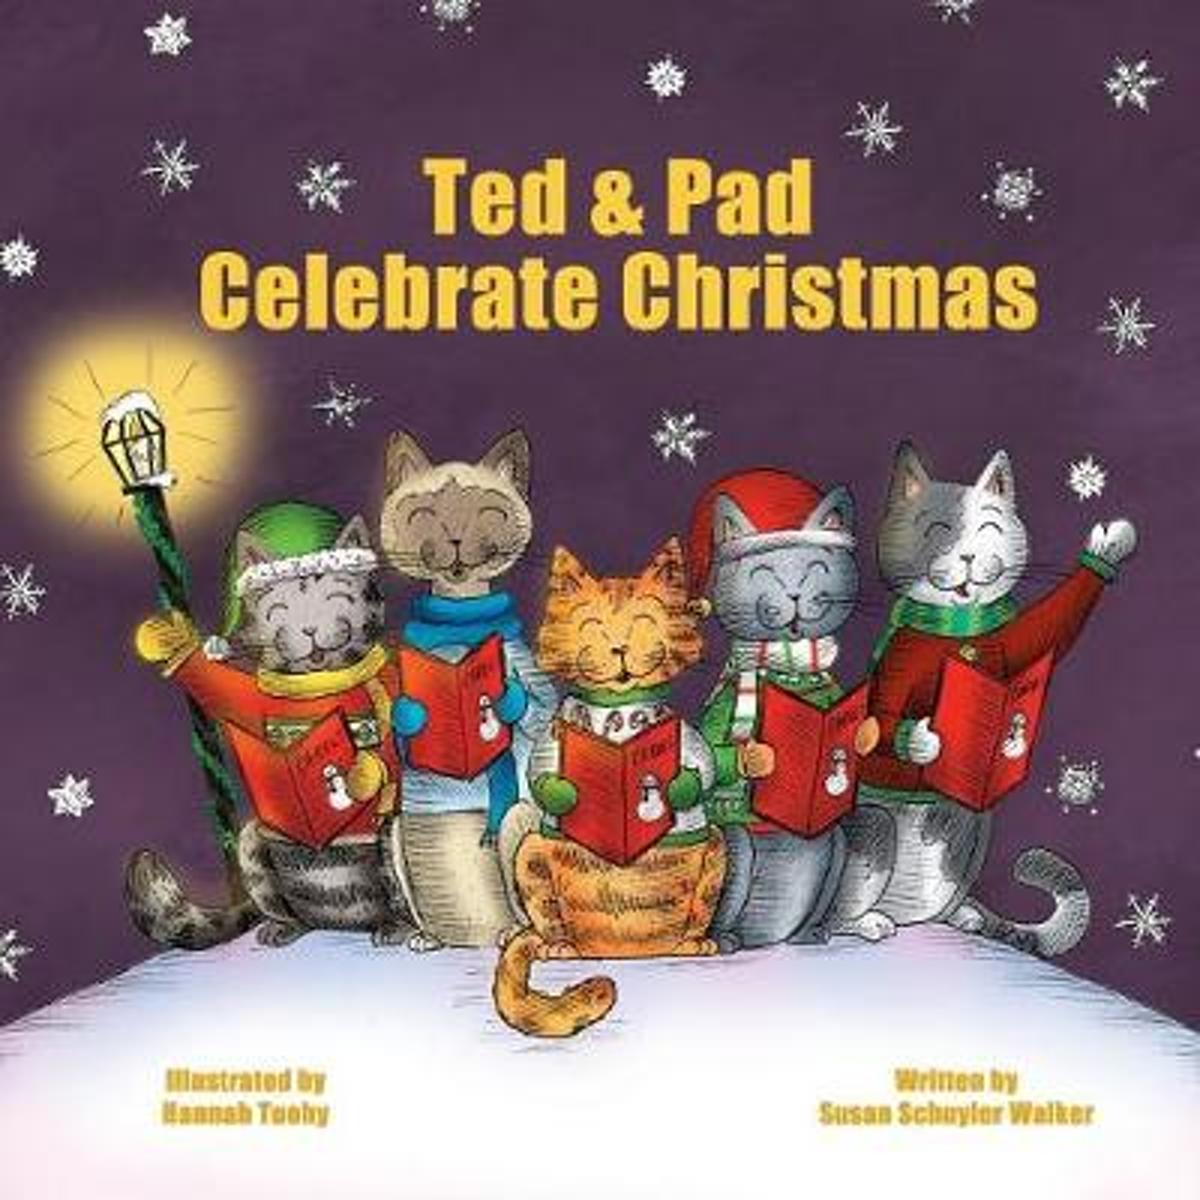 Ted & Pad Celebrate Christmas